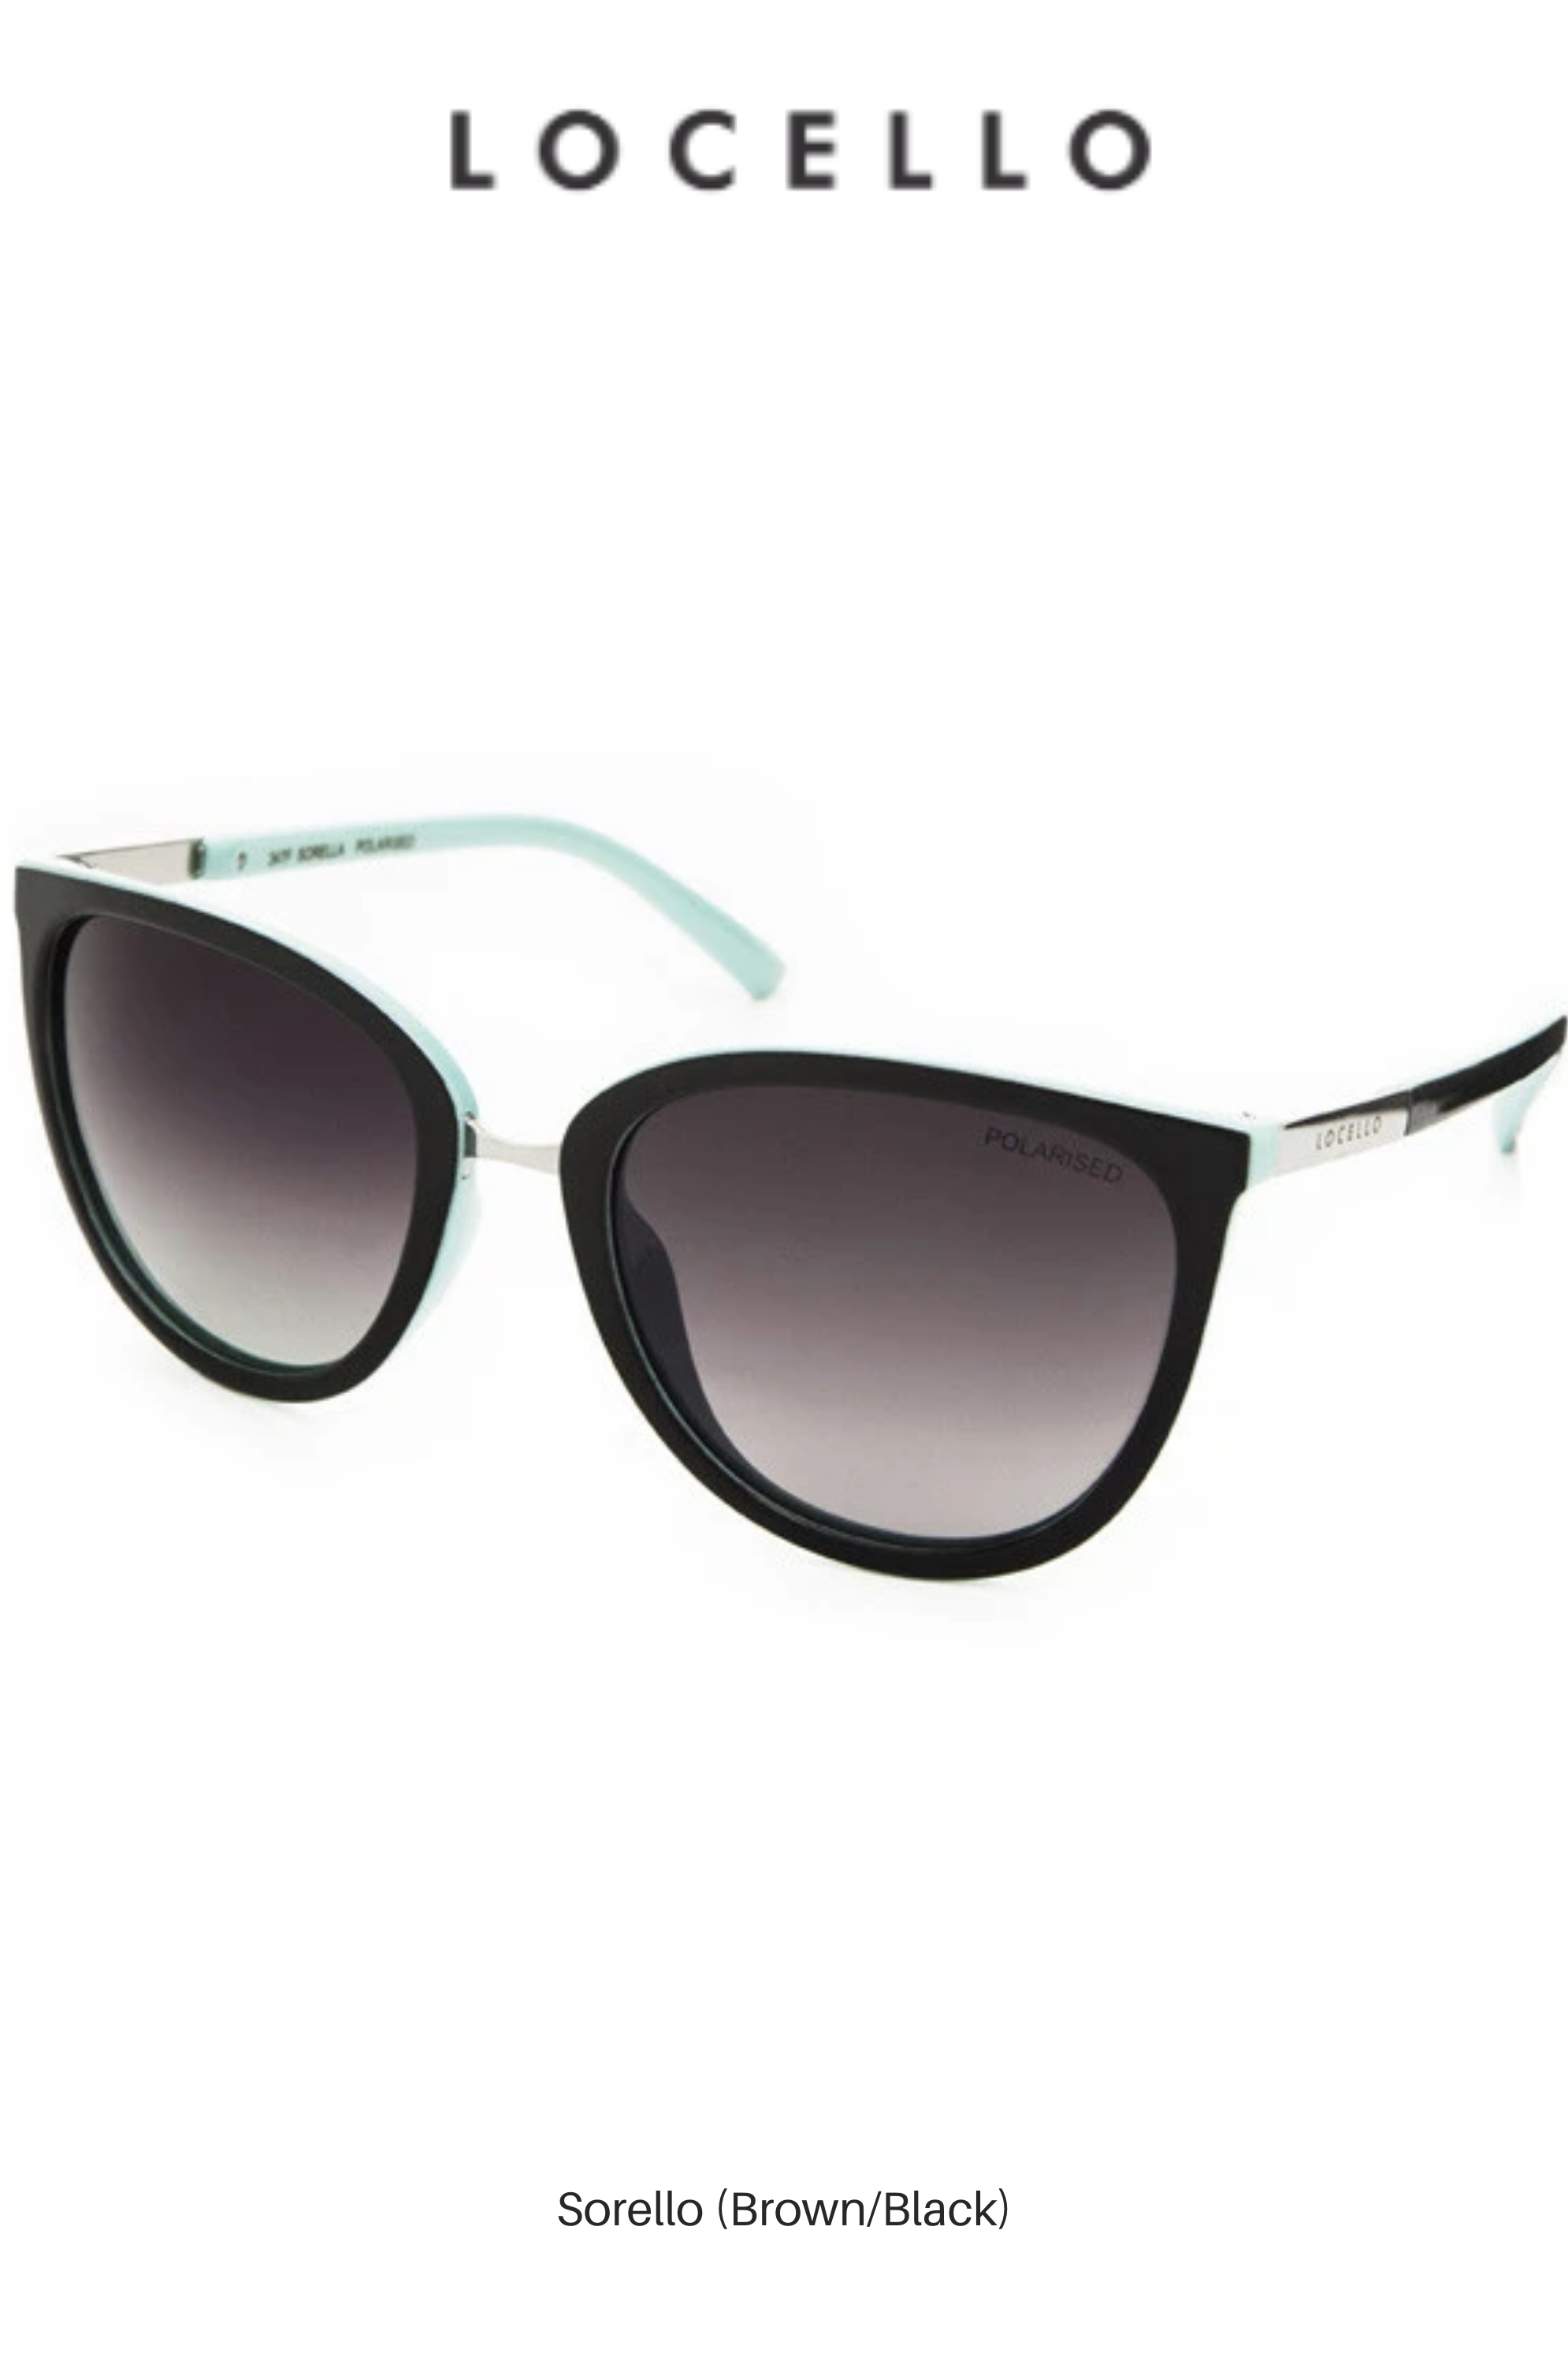 Sorello - Locello Sunglasses